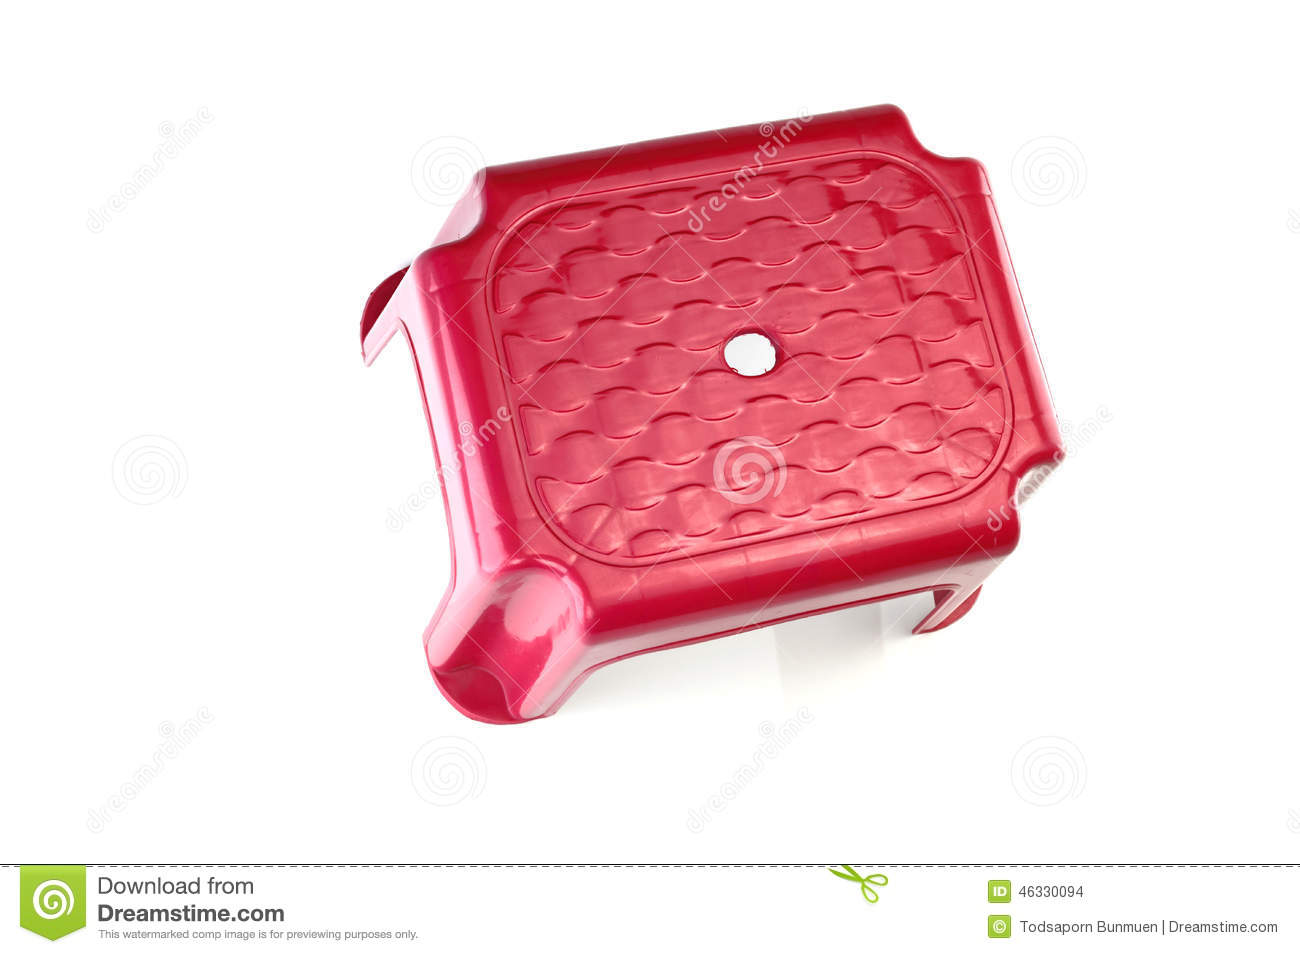 Royalty-Free Stock Photo. Download Small Plastic Chair ...  sc 1 st  Dreamstime.com & Small Plastic Chair On White Background Stock Photo - Image: 46330094 islam-shia.org